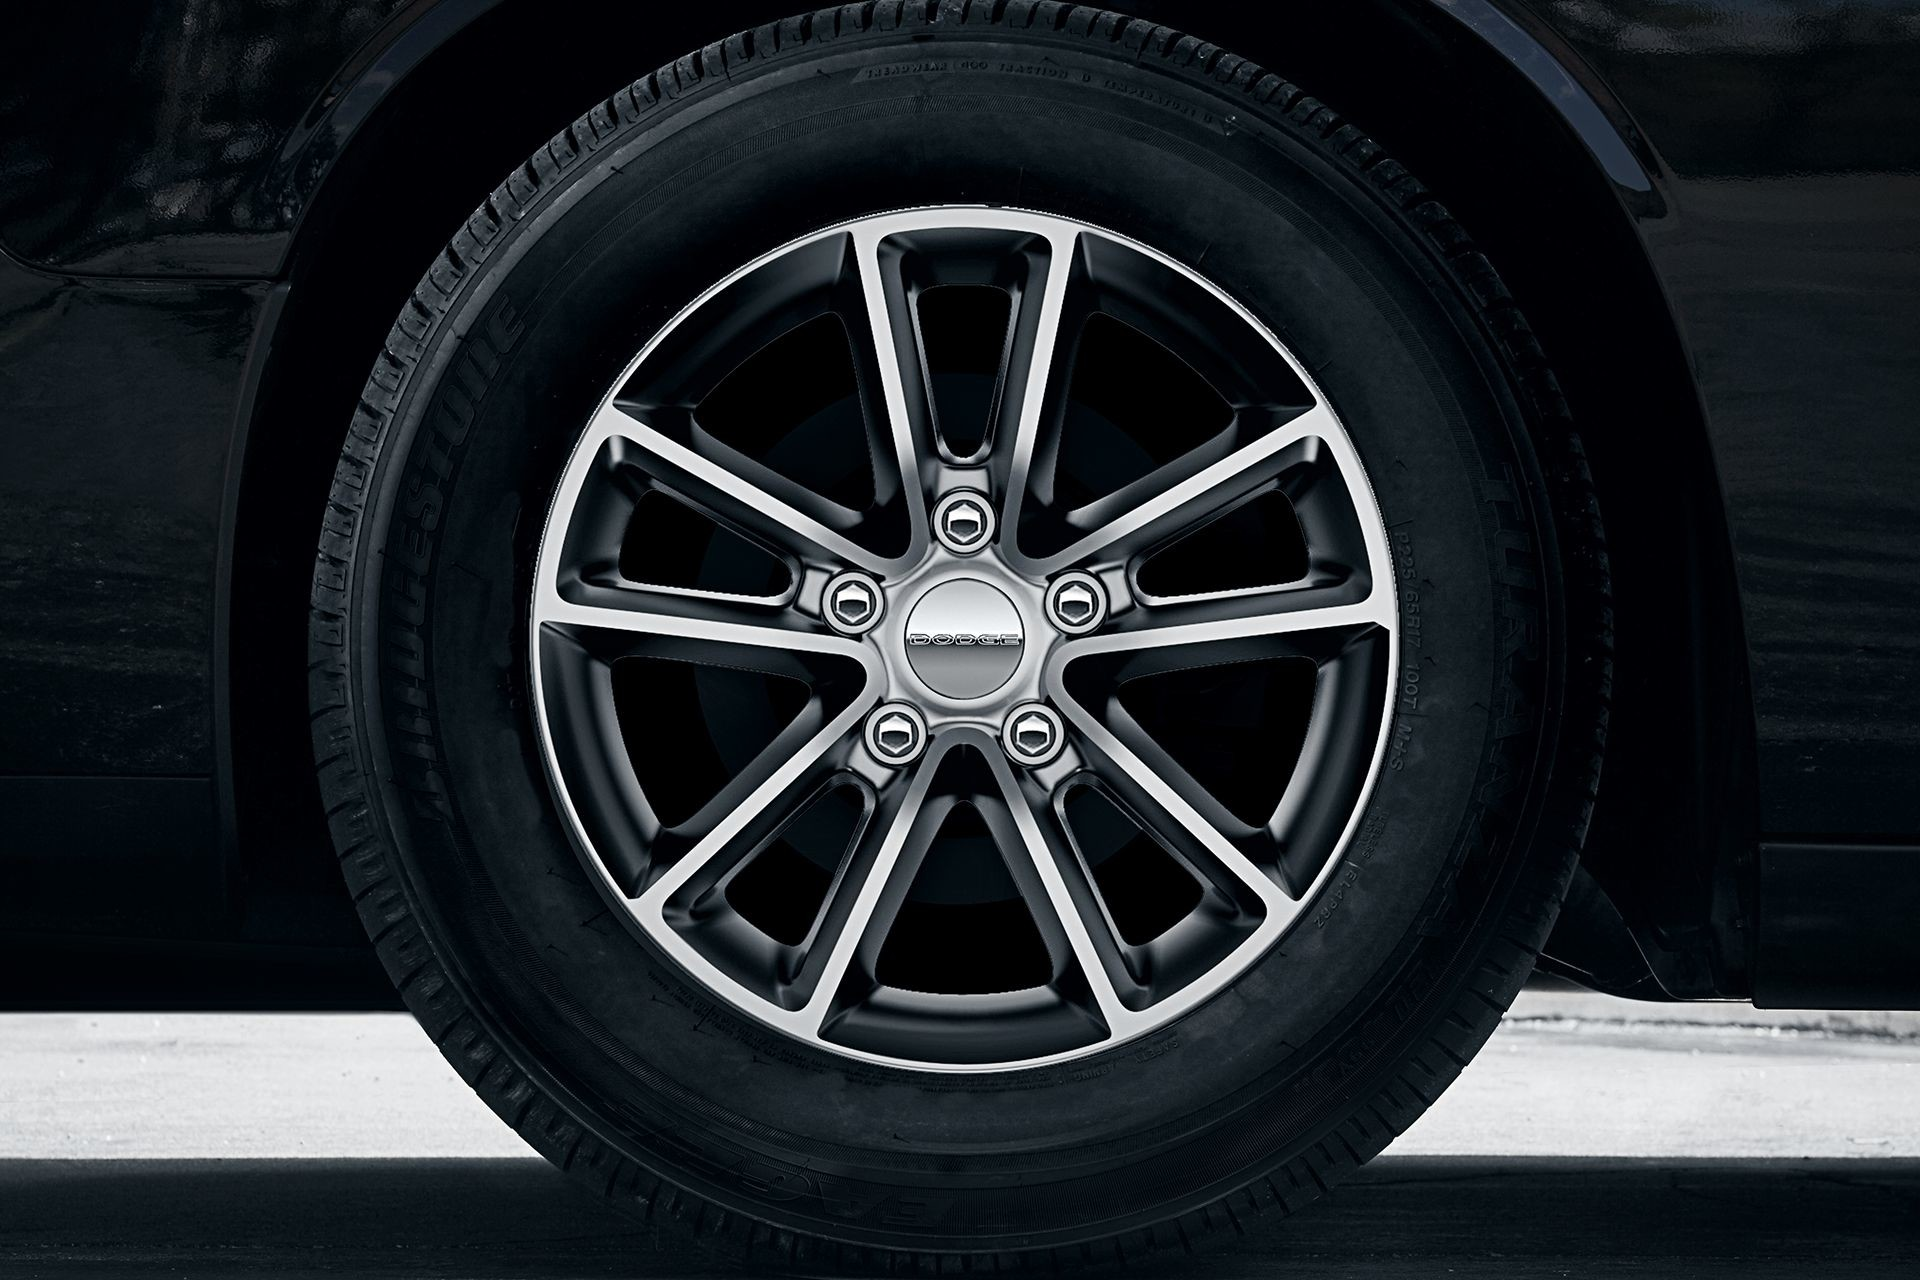 2019 Dodge Grand Caravan exterior view of wheel